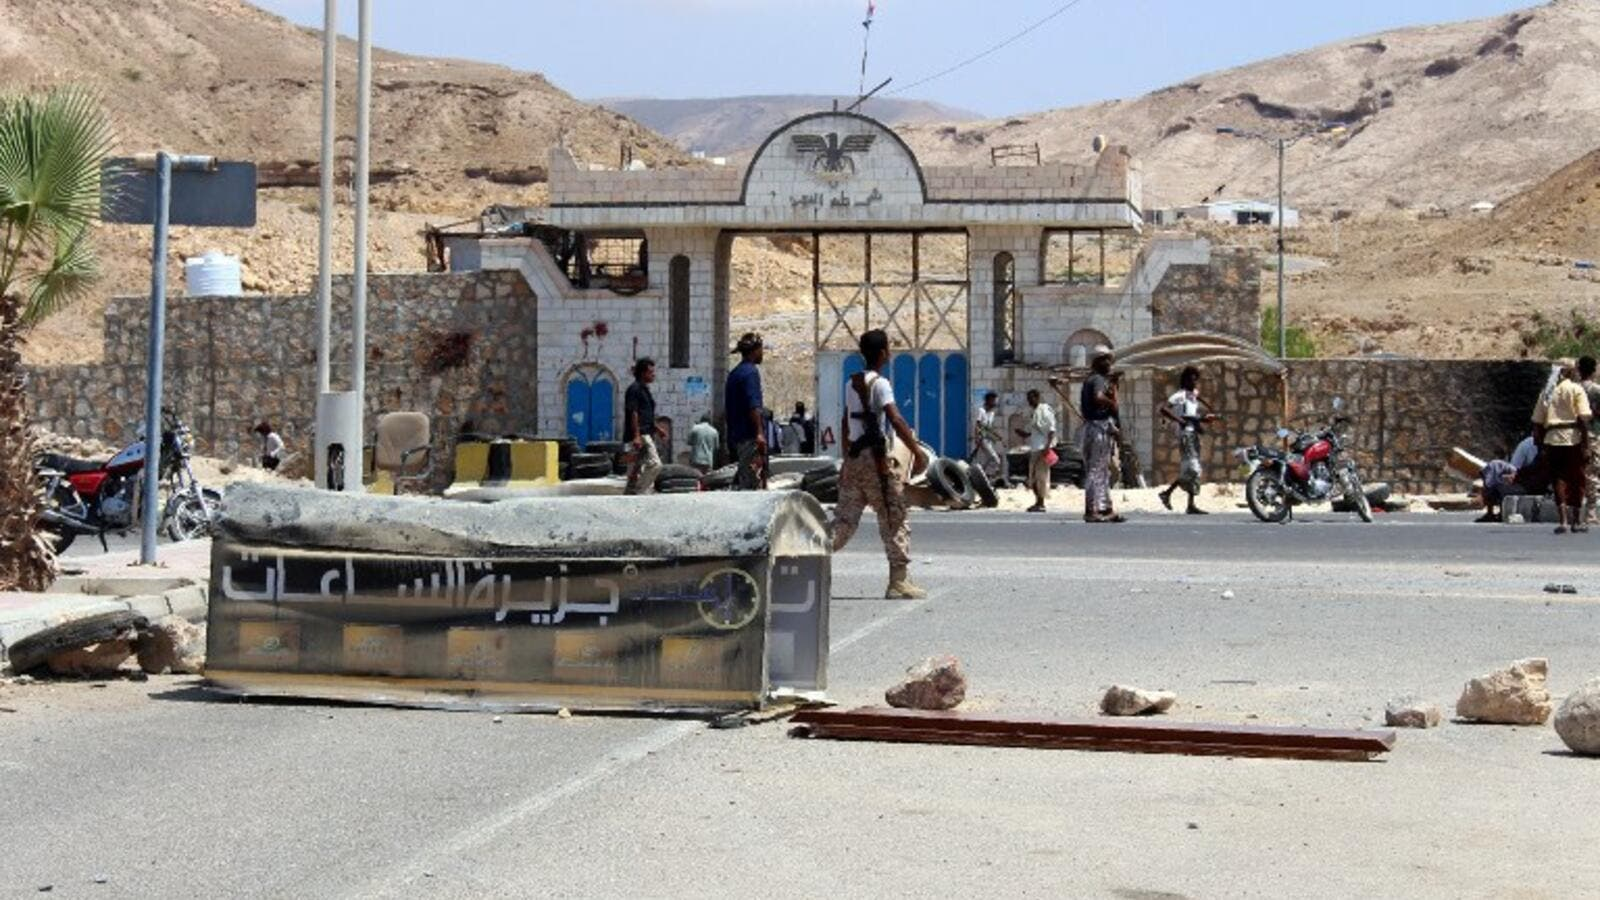 A checkpoint in Mukalla, Yemen. (AFP/File)